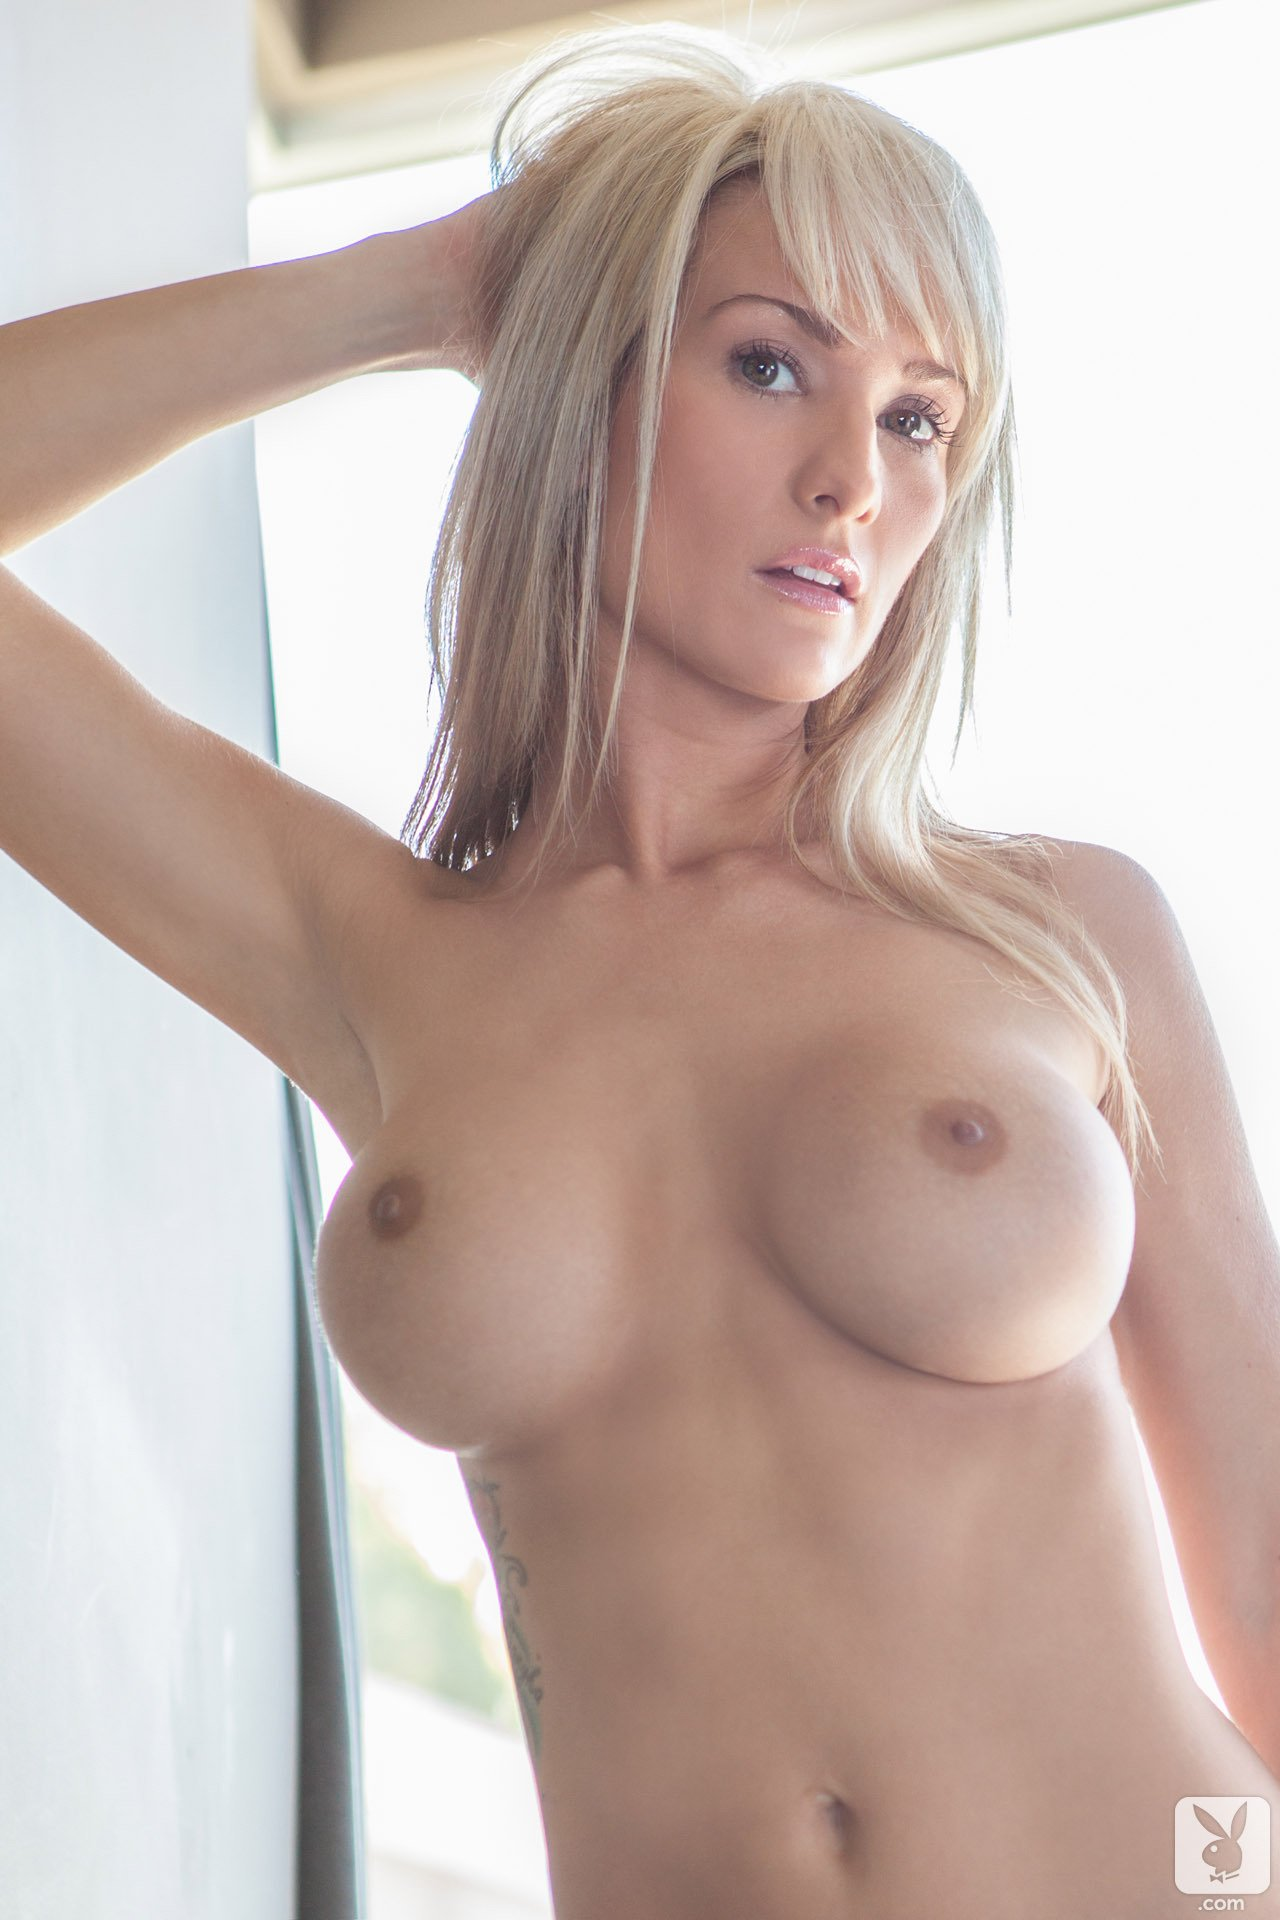 jessie-ann-blonde-boobs-bathtube-naked-playboy-06